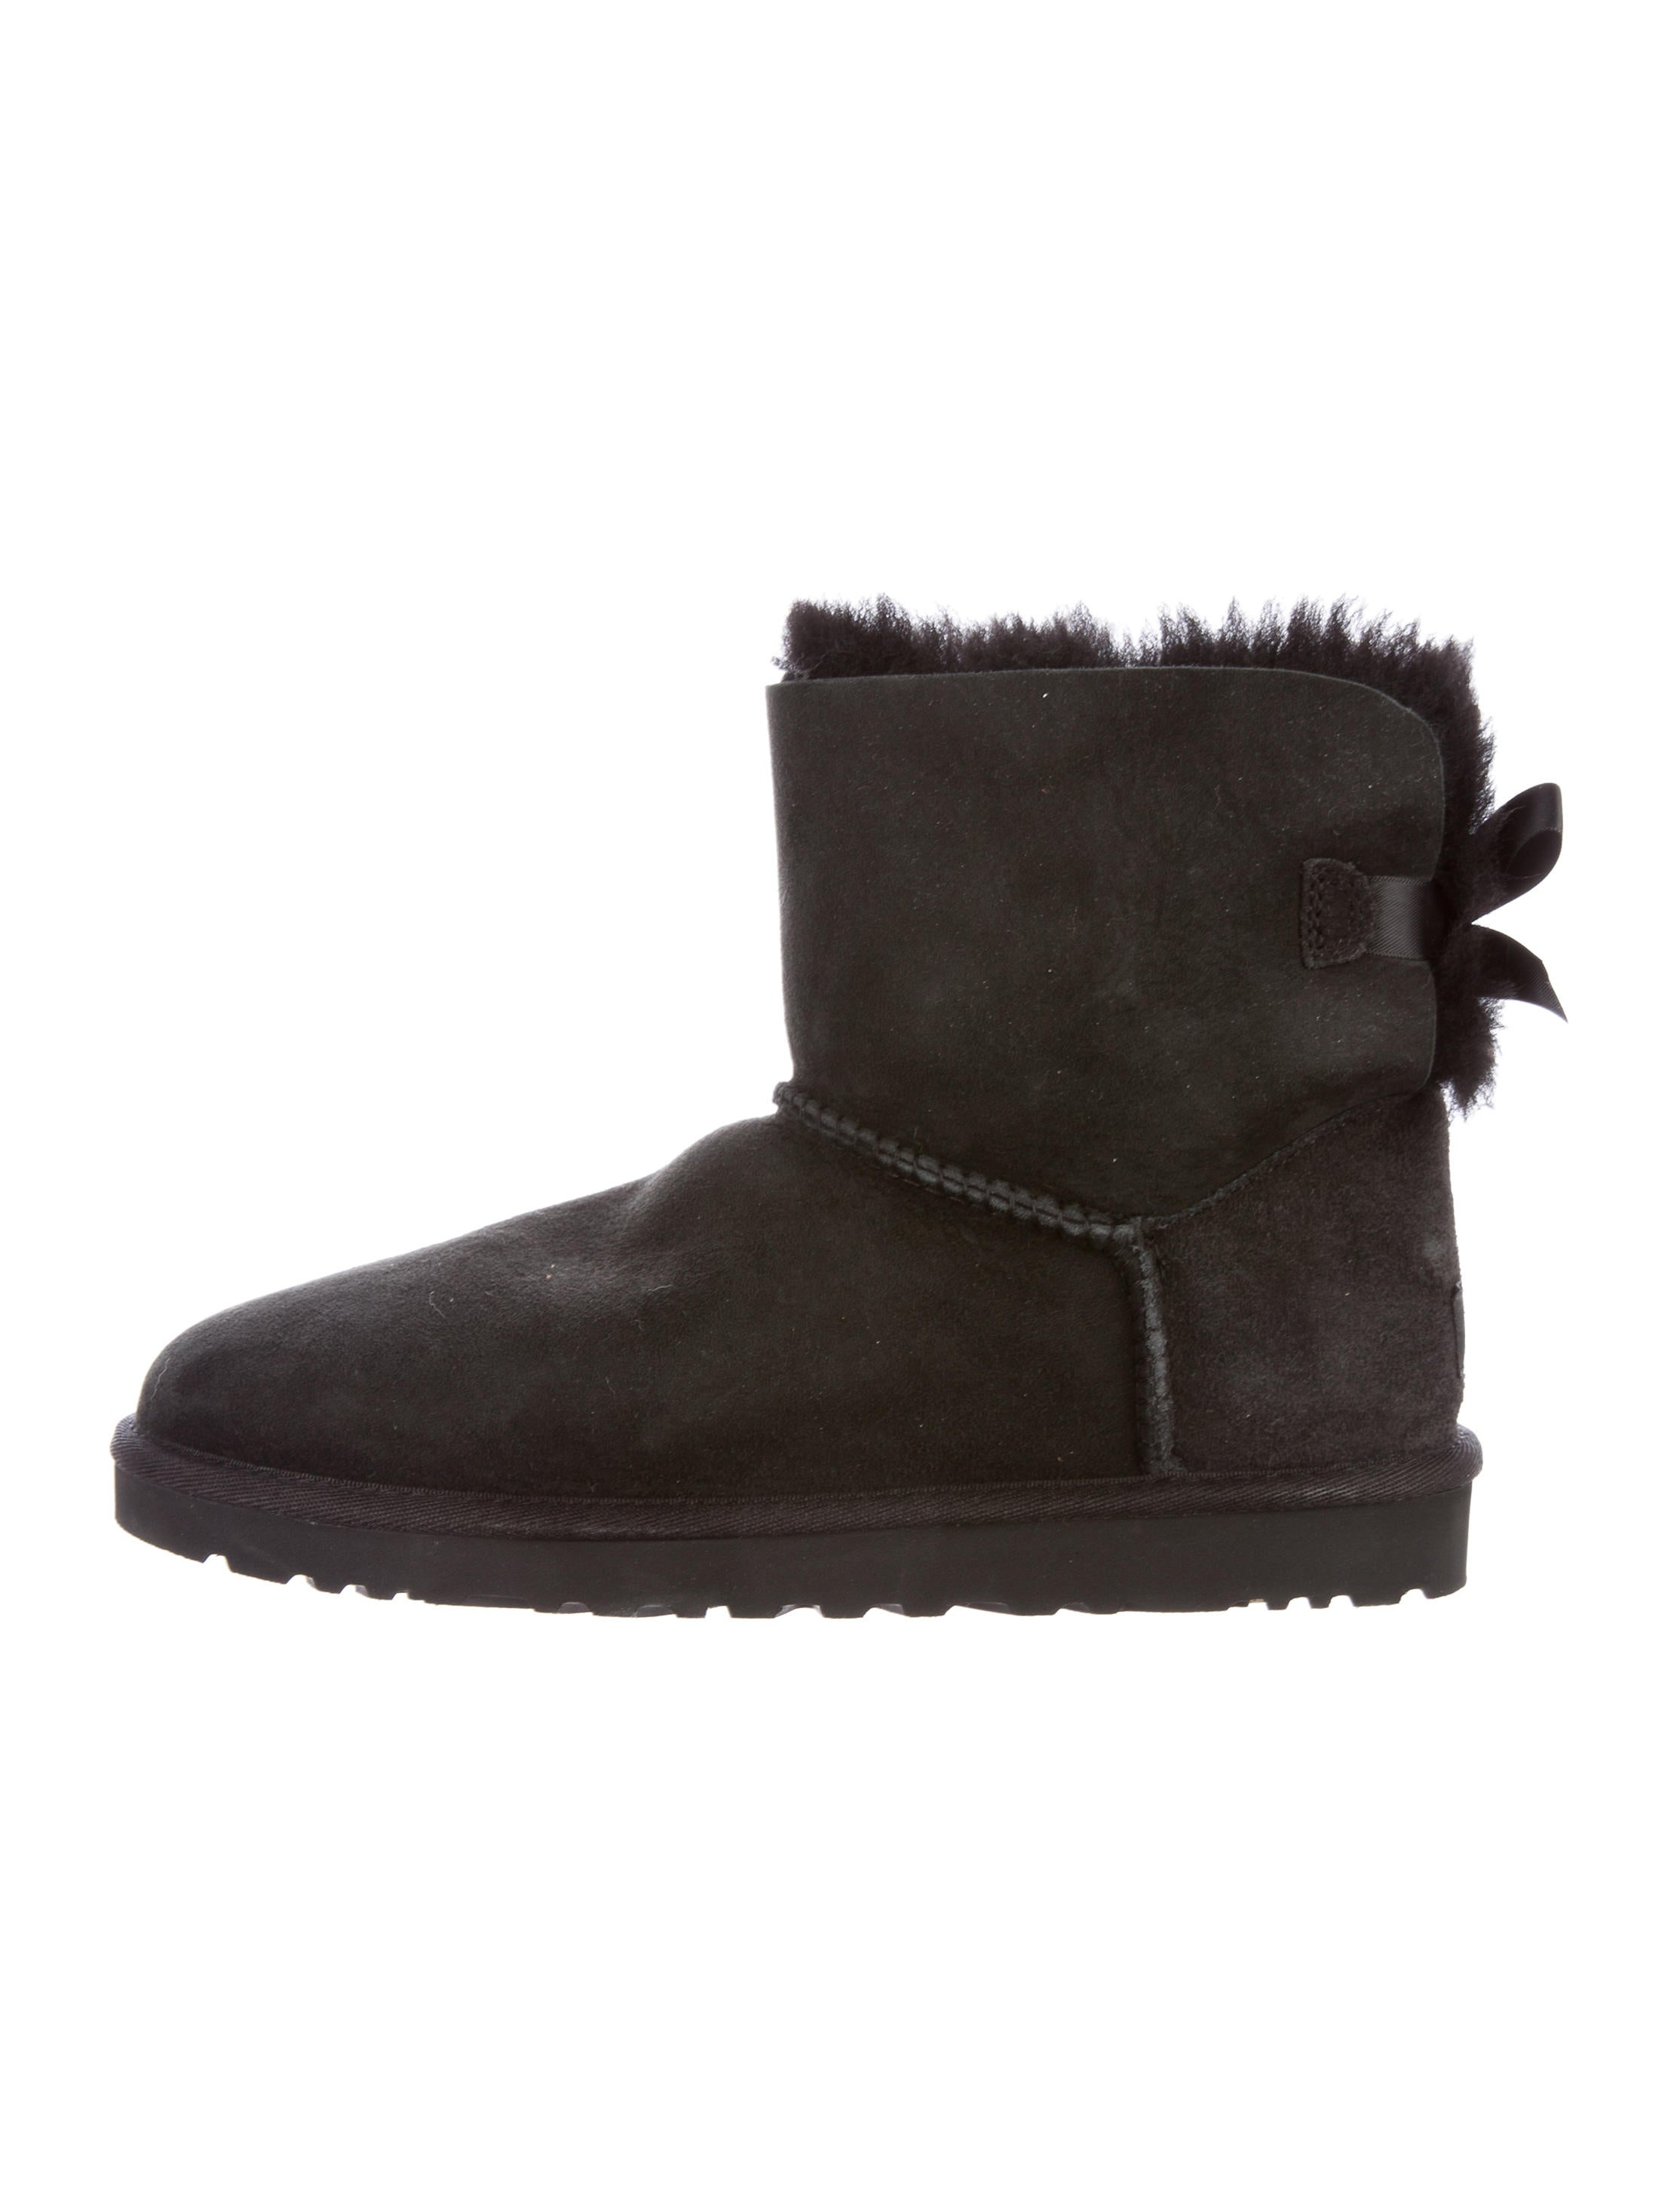 UGG Australia Suede Bow-Accented Ankle Boots